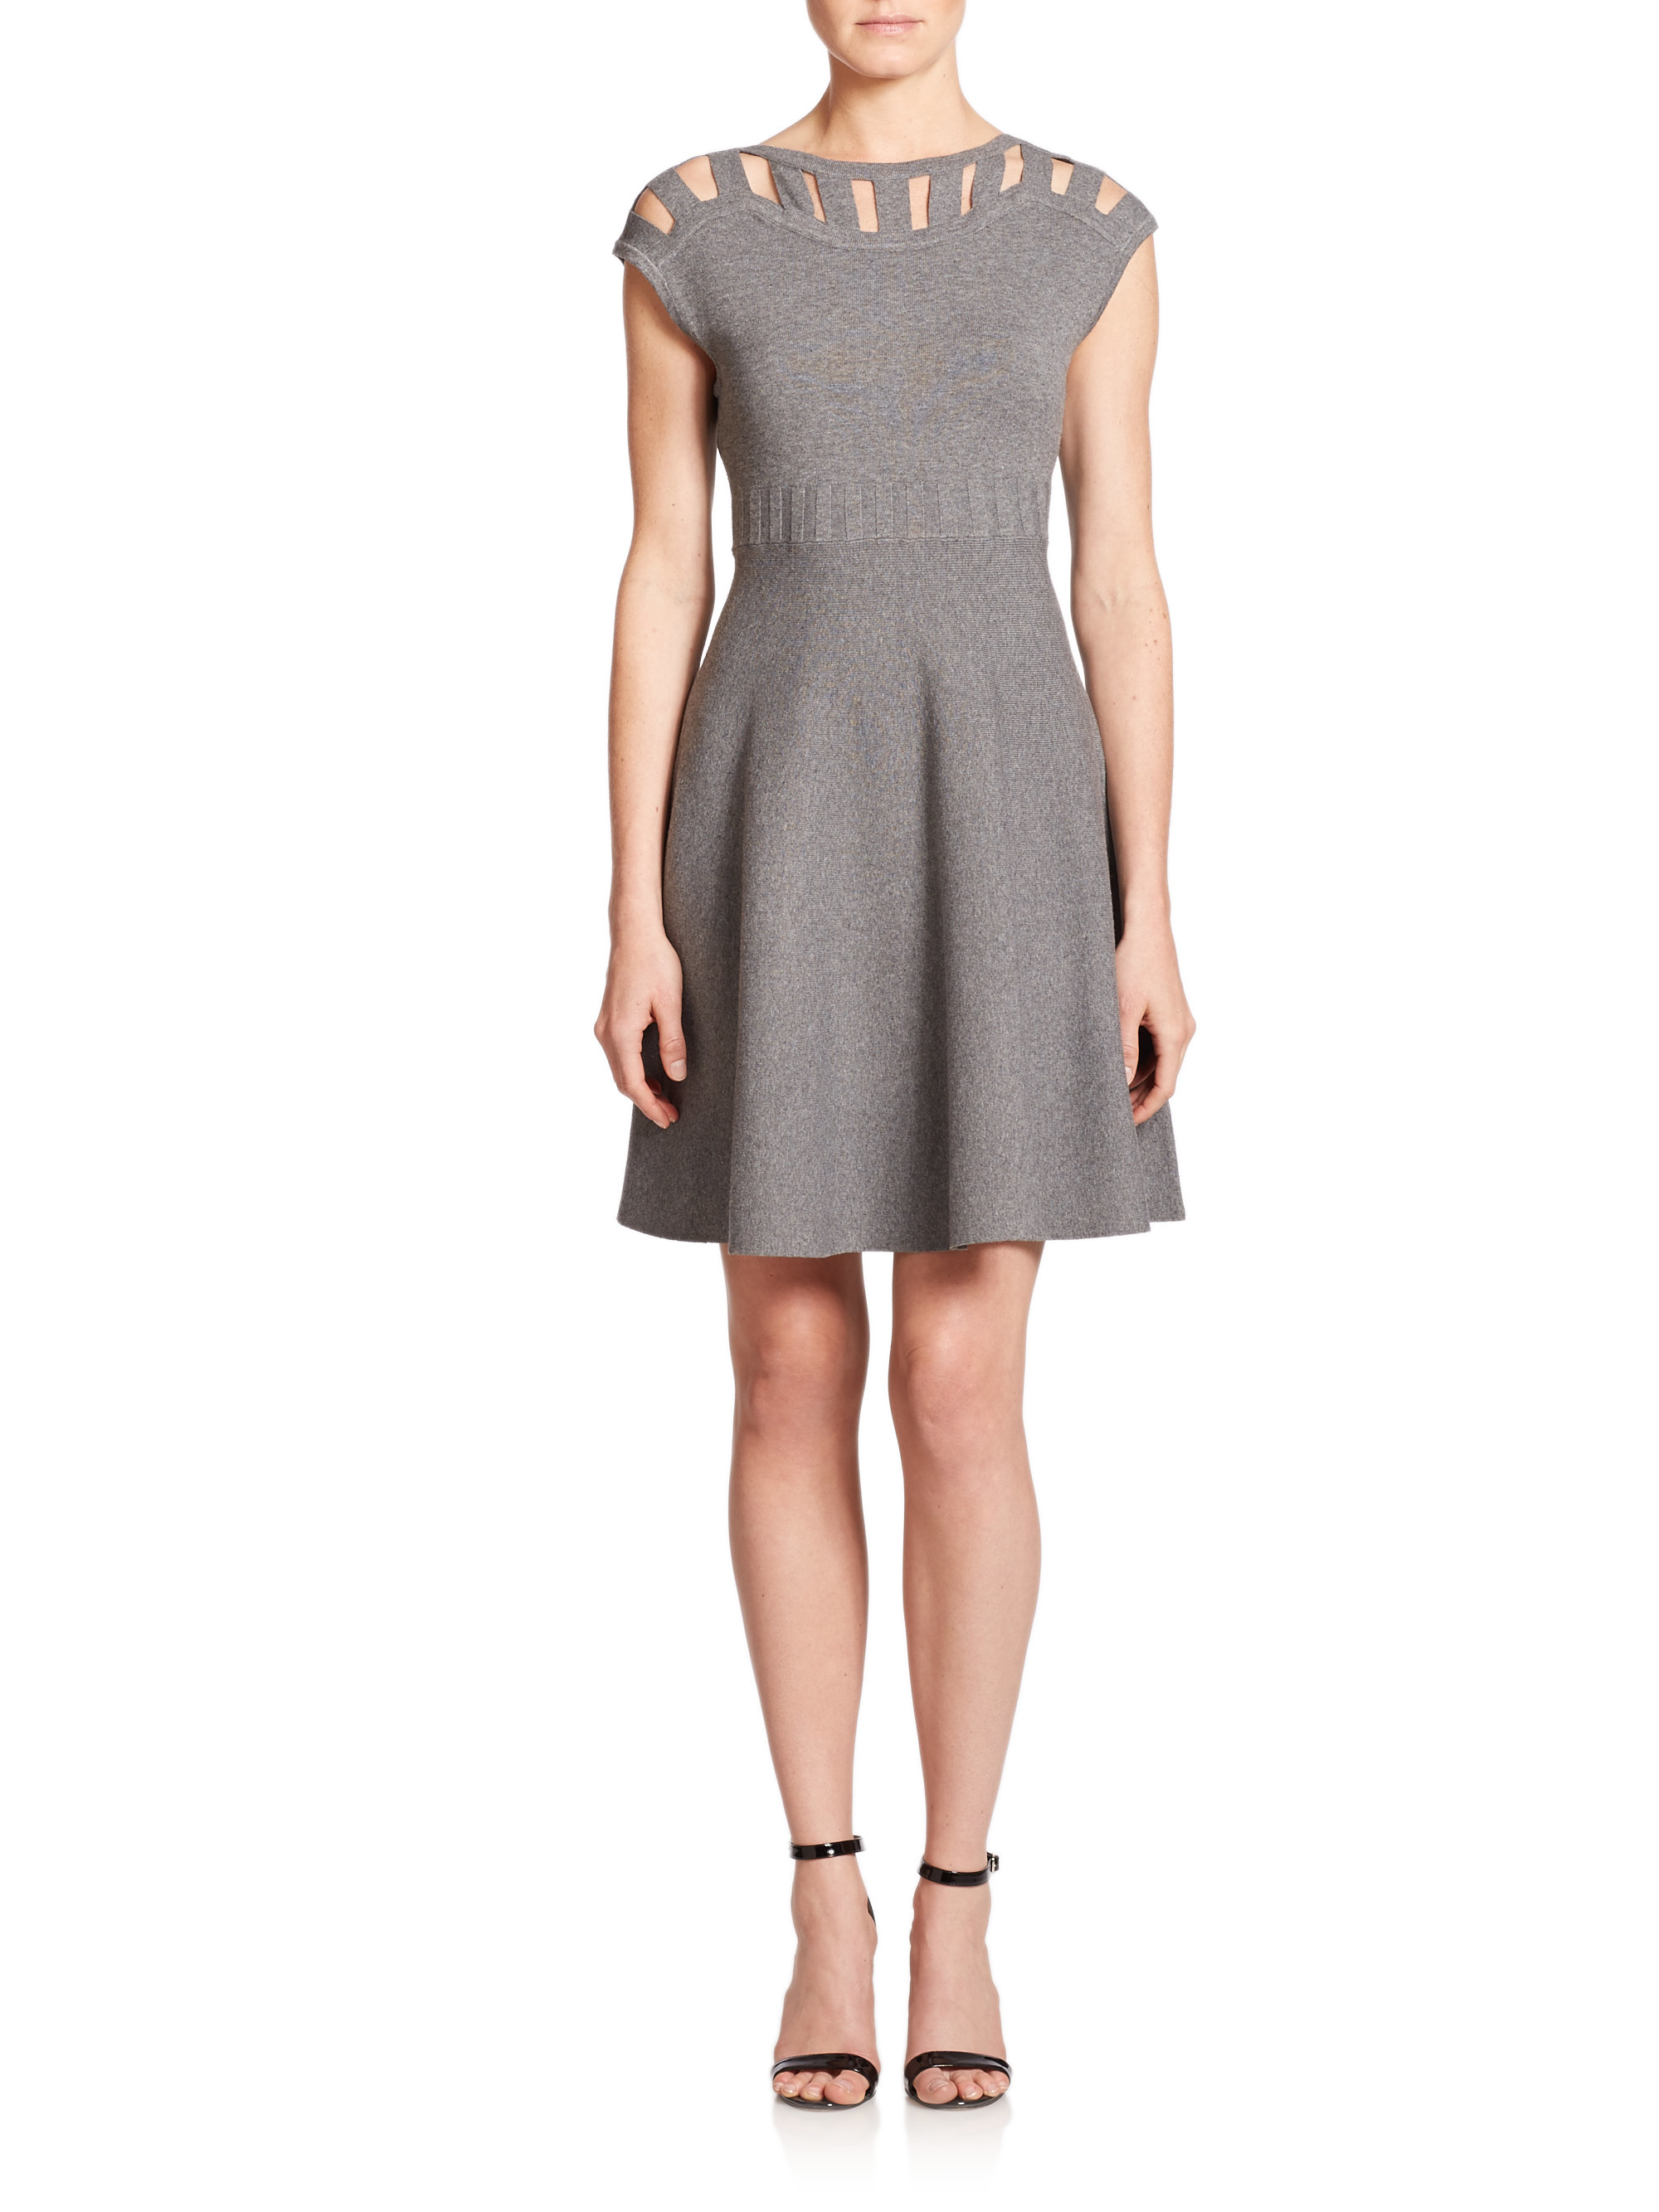 Milly Synthetic Cutout Fit Amp Flare Dress In Heather Grey